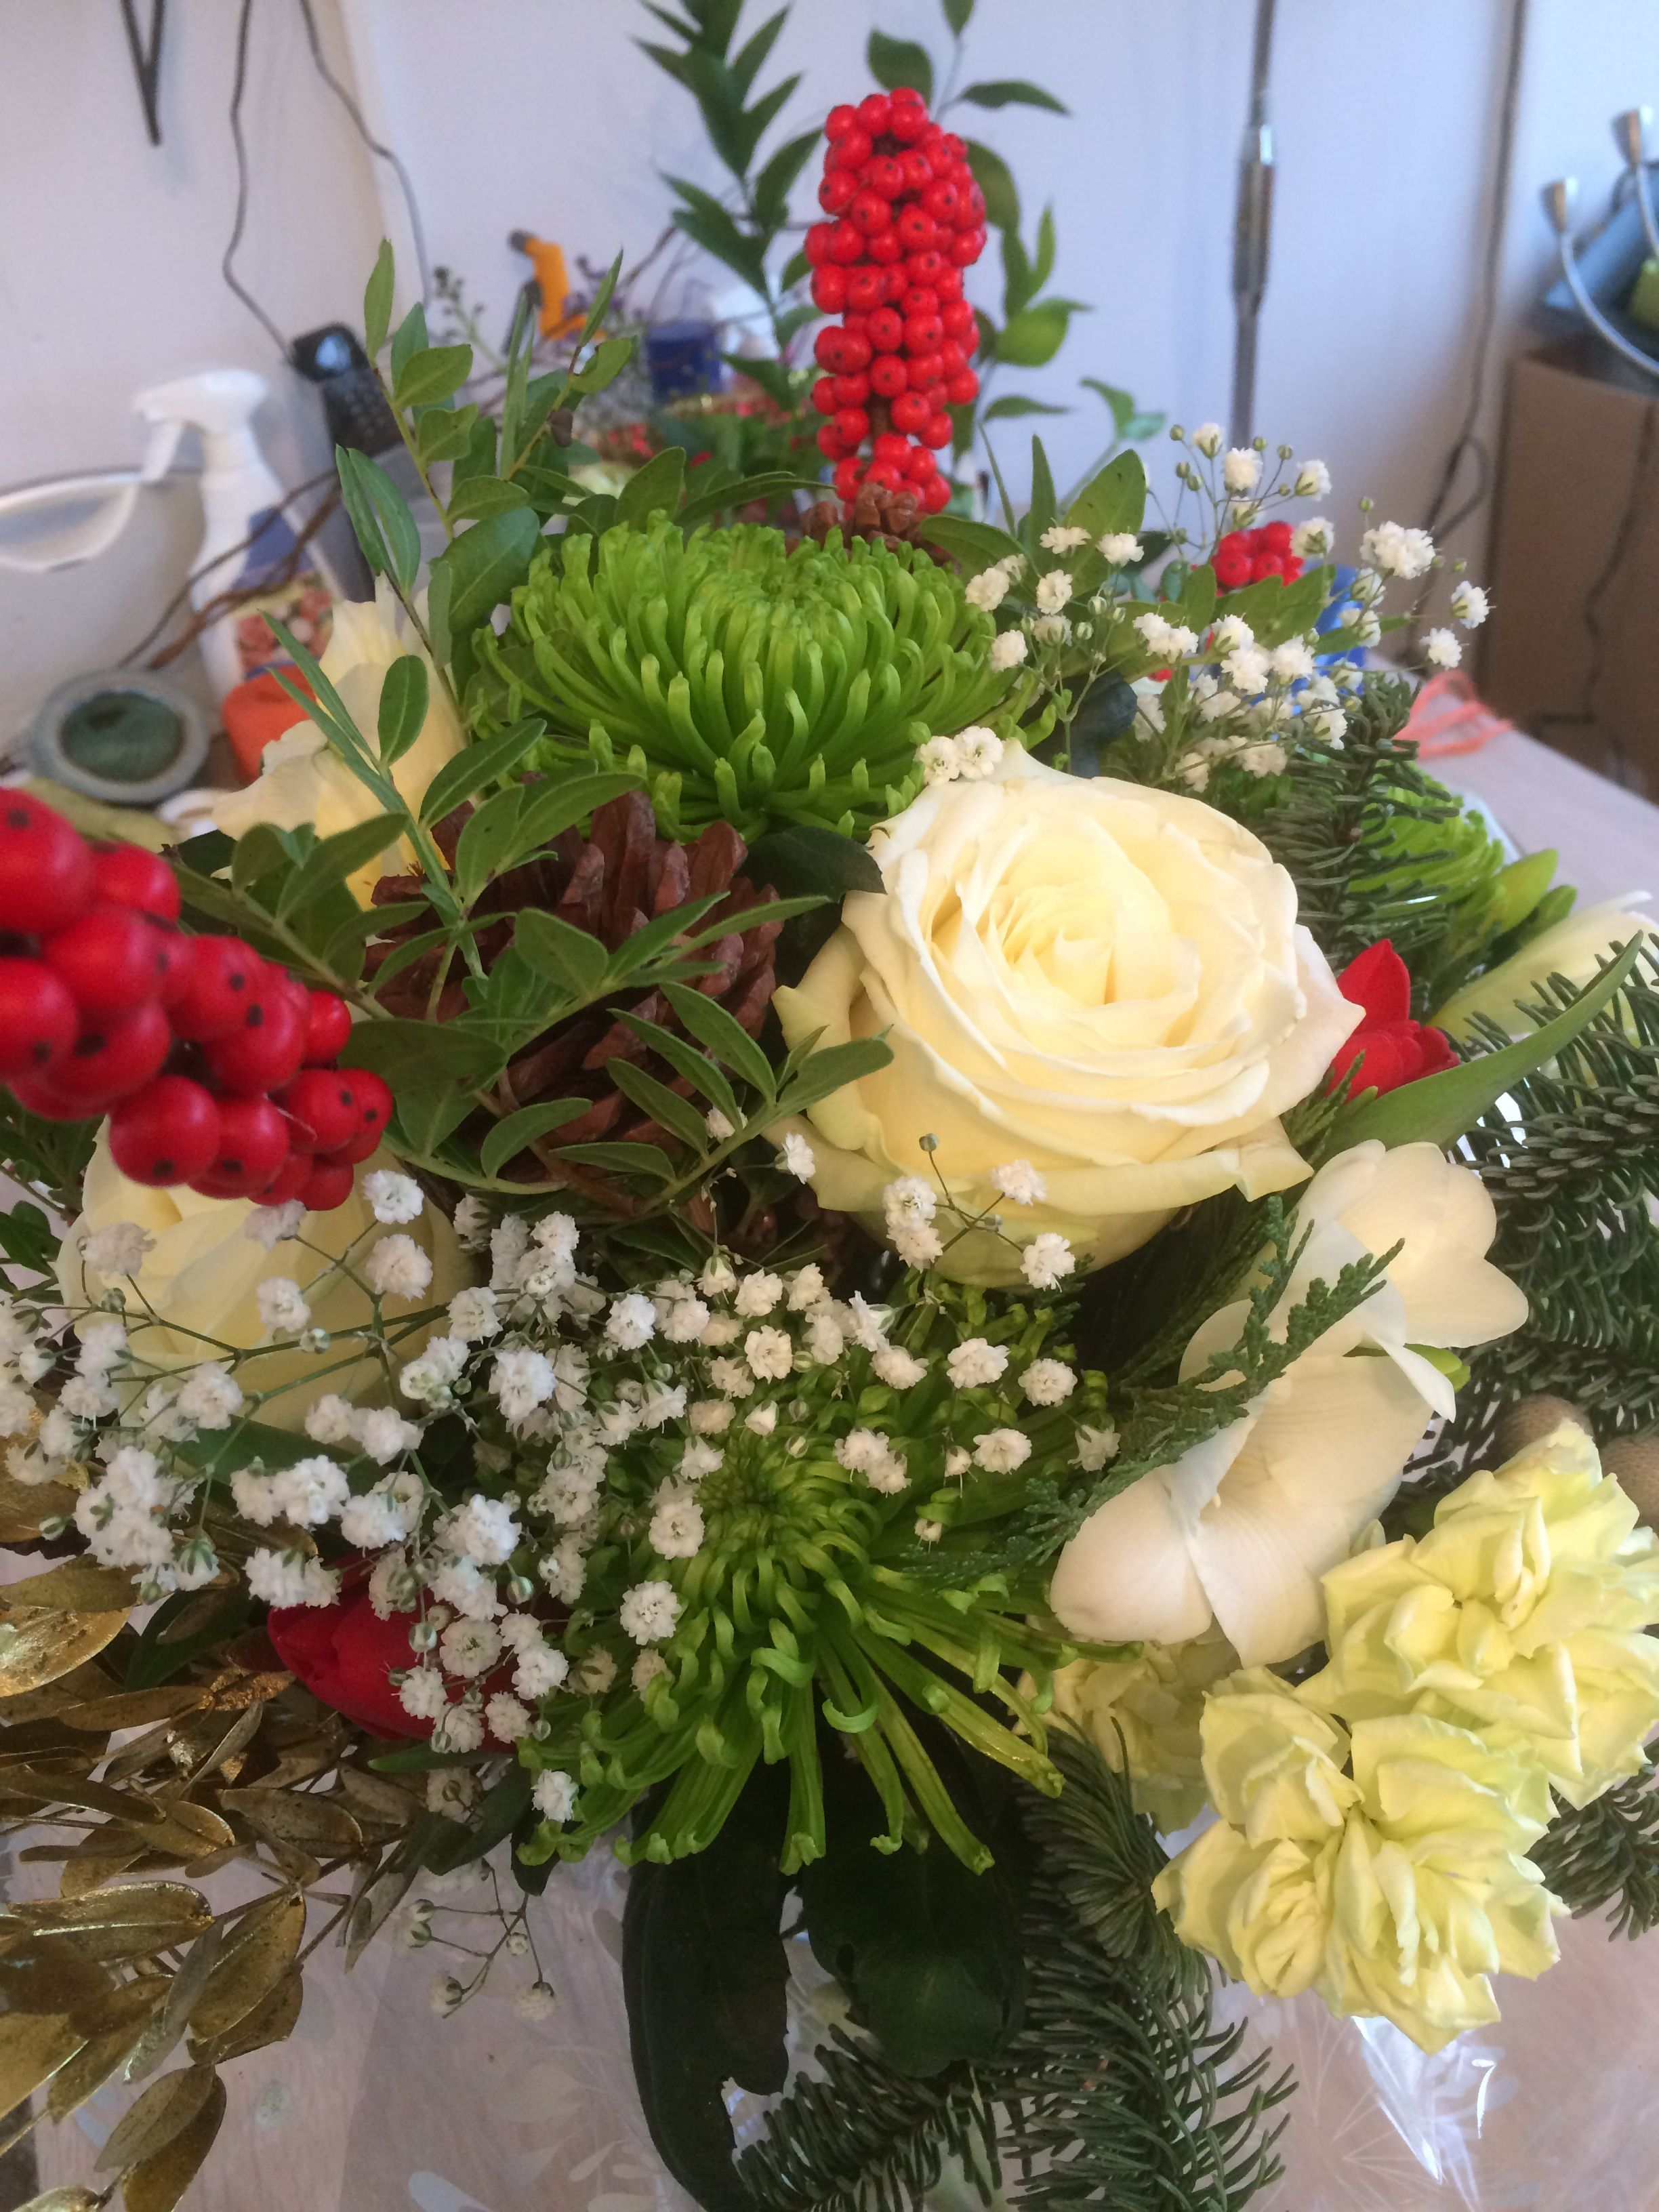 Seasonal christmas luxury gift flower bouquet created by willow willow house flowers aylesbury florist free same day delivery in aylesbury bucks local on line florist for next day local delivery flowers bouquets izmirmasajfo Images